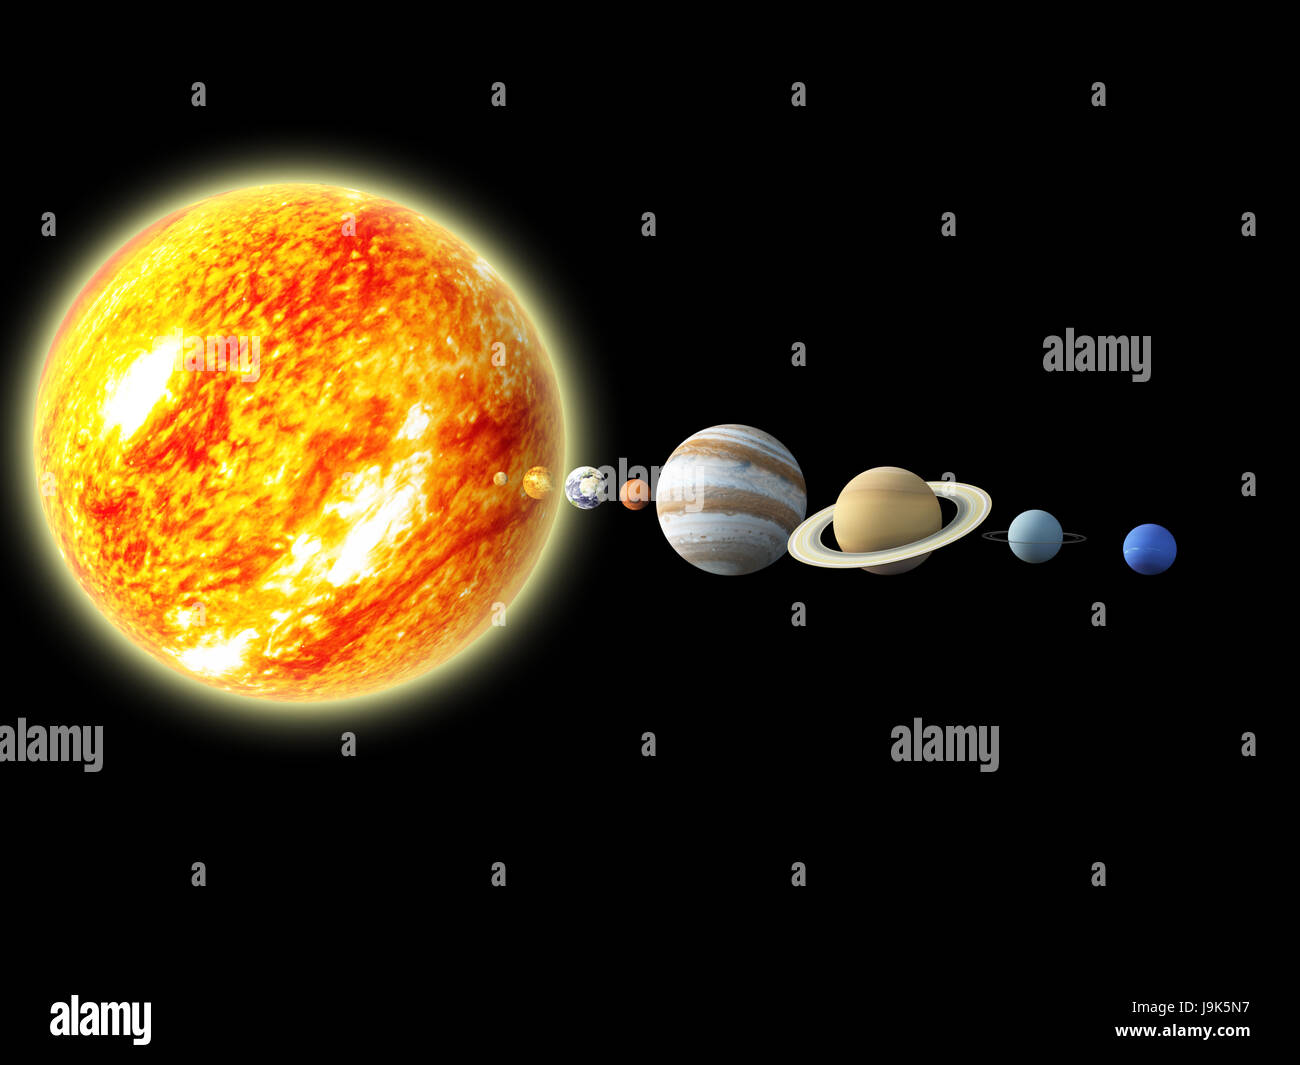 Education Science Solar System Astronomy Planetary Order Colour Space